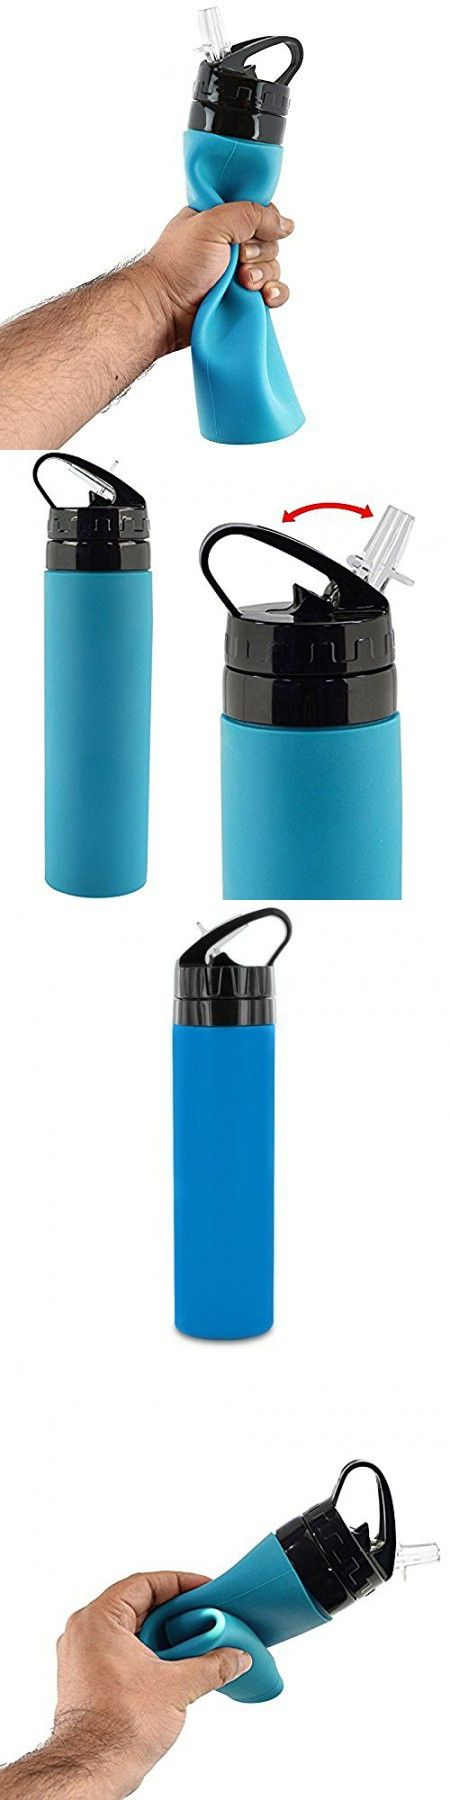 Silicone Squeeze Water Bottle - Blue Sports BPA Free Light Weight Reusable - Leak Proof Foldable Water Bottle, 26 OZ By